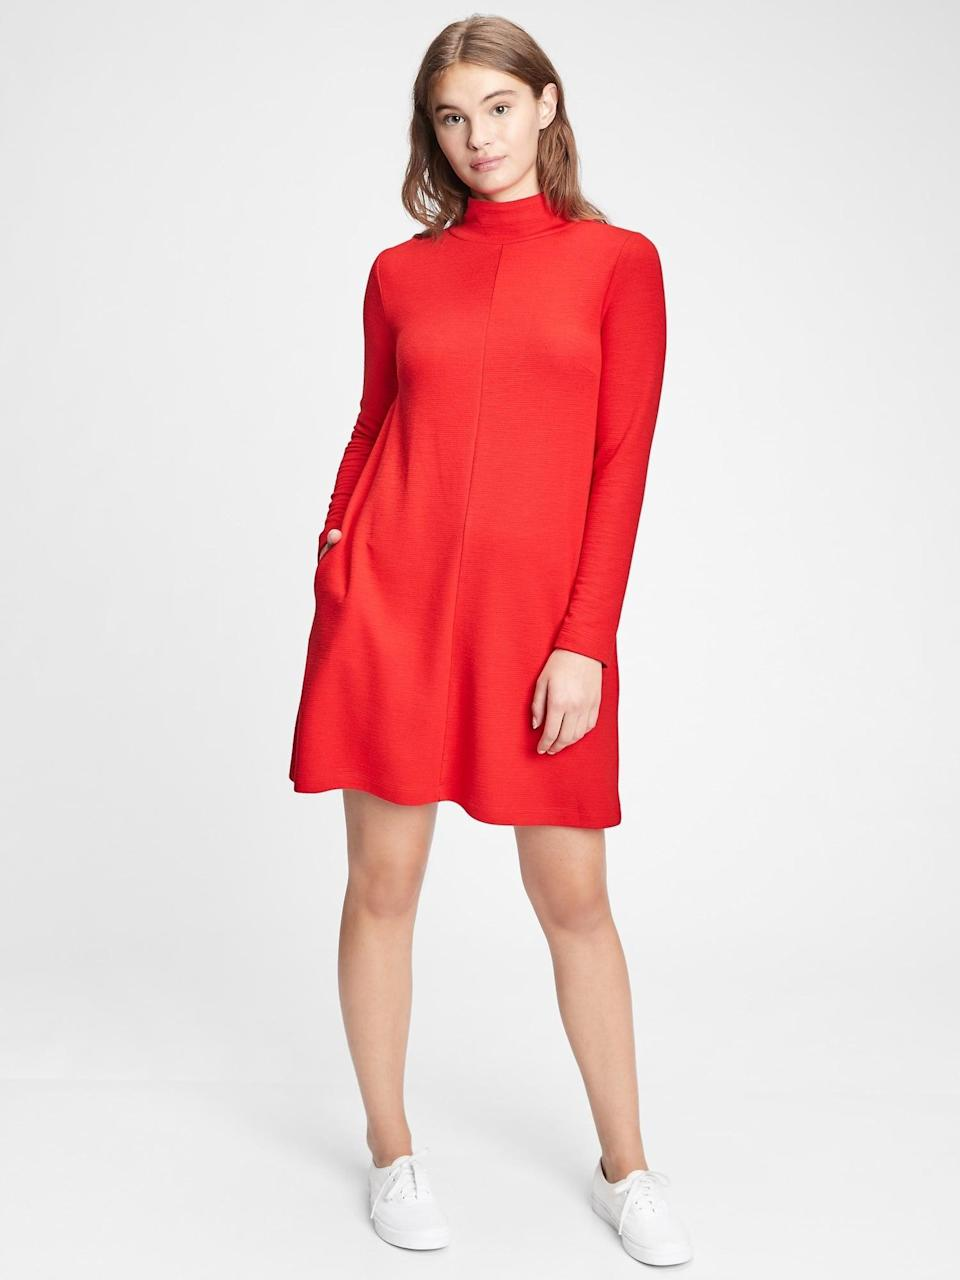 <p>Pair this <span>Gap Mockneck Swing Dress</span> ($45, originally $70) with opaque black tights and platforms for a mod Valentine's day look. Once in a while, I'll wear platforms in the house, and pretend I have plans to leave!</p>